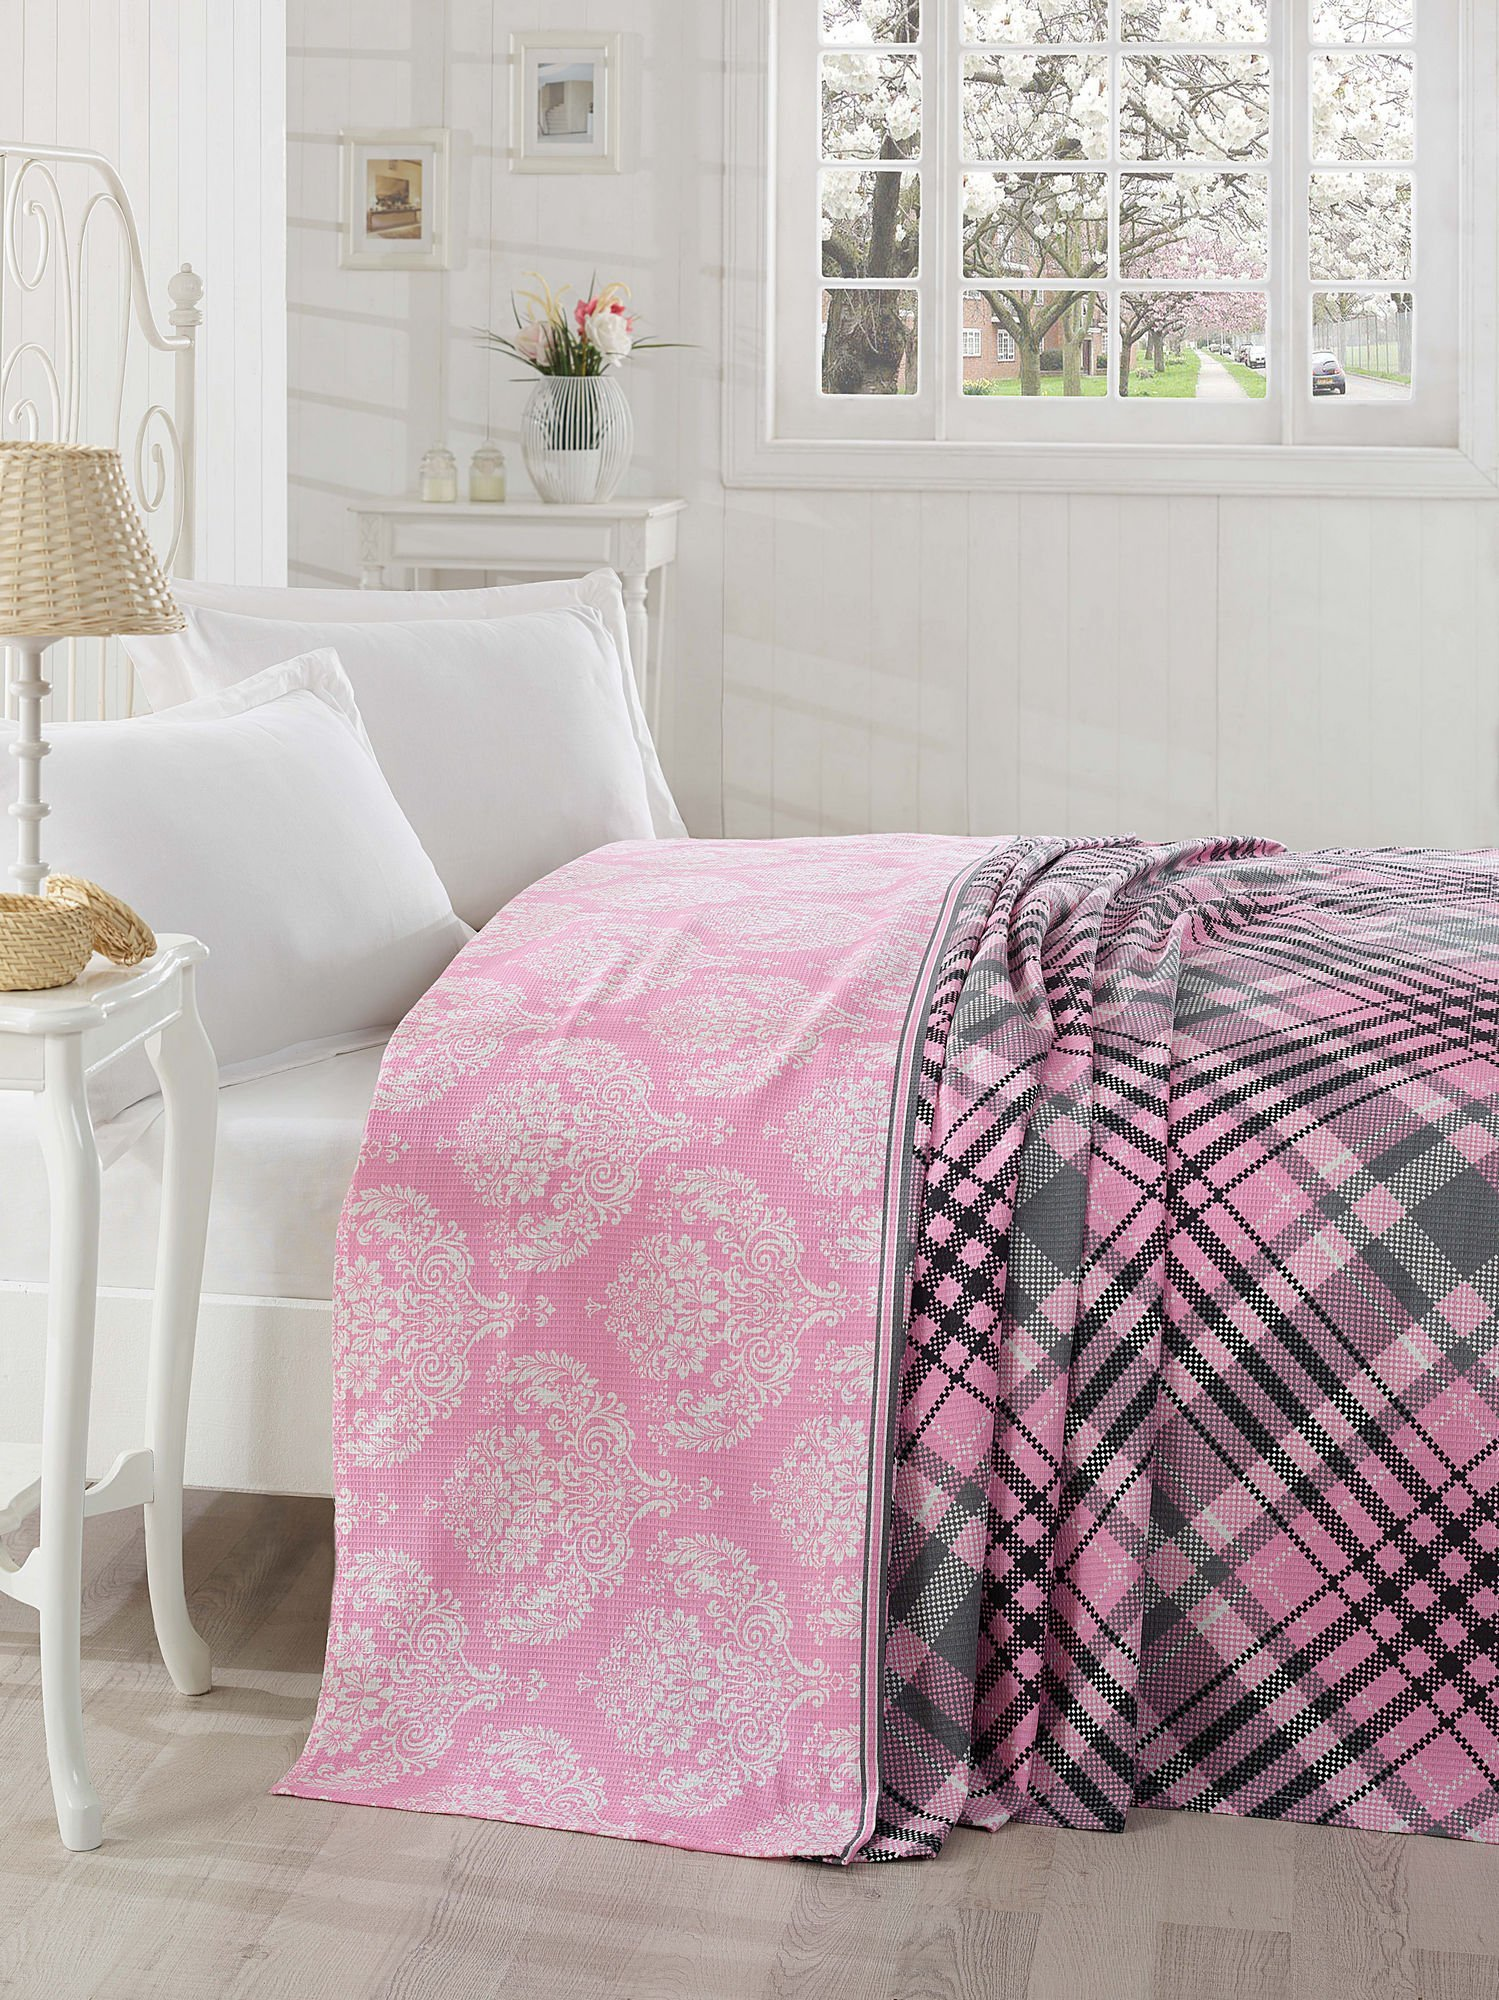 LaModaHome Traditional Coverlet, 100% Cotton - Traditional Motifs, Pink, White, Black Lines - Size (78.7'' x 92.5'') for Queen Bed